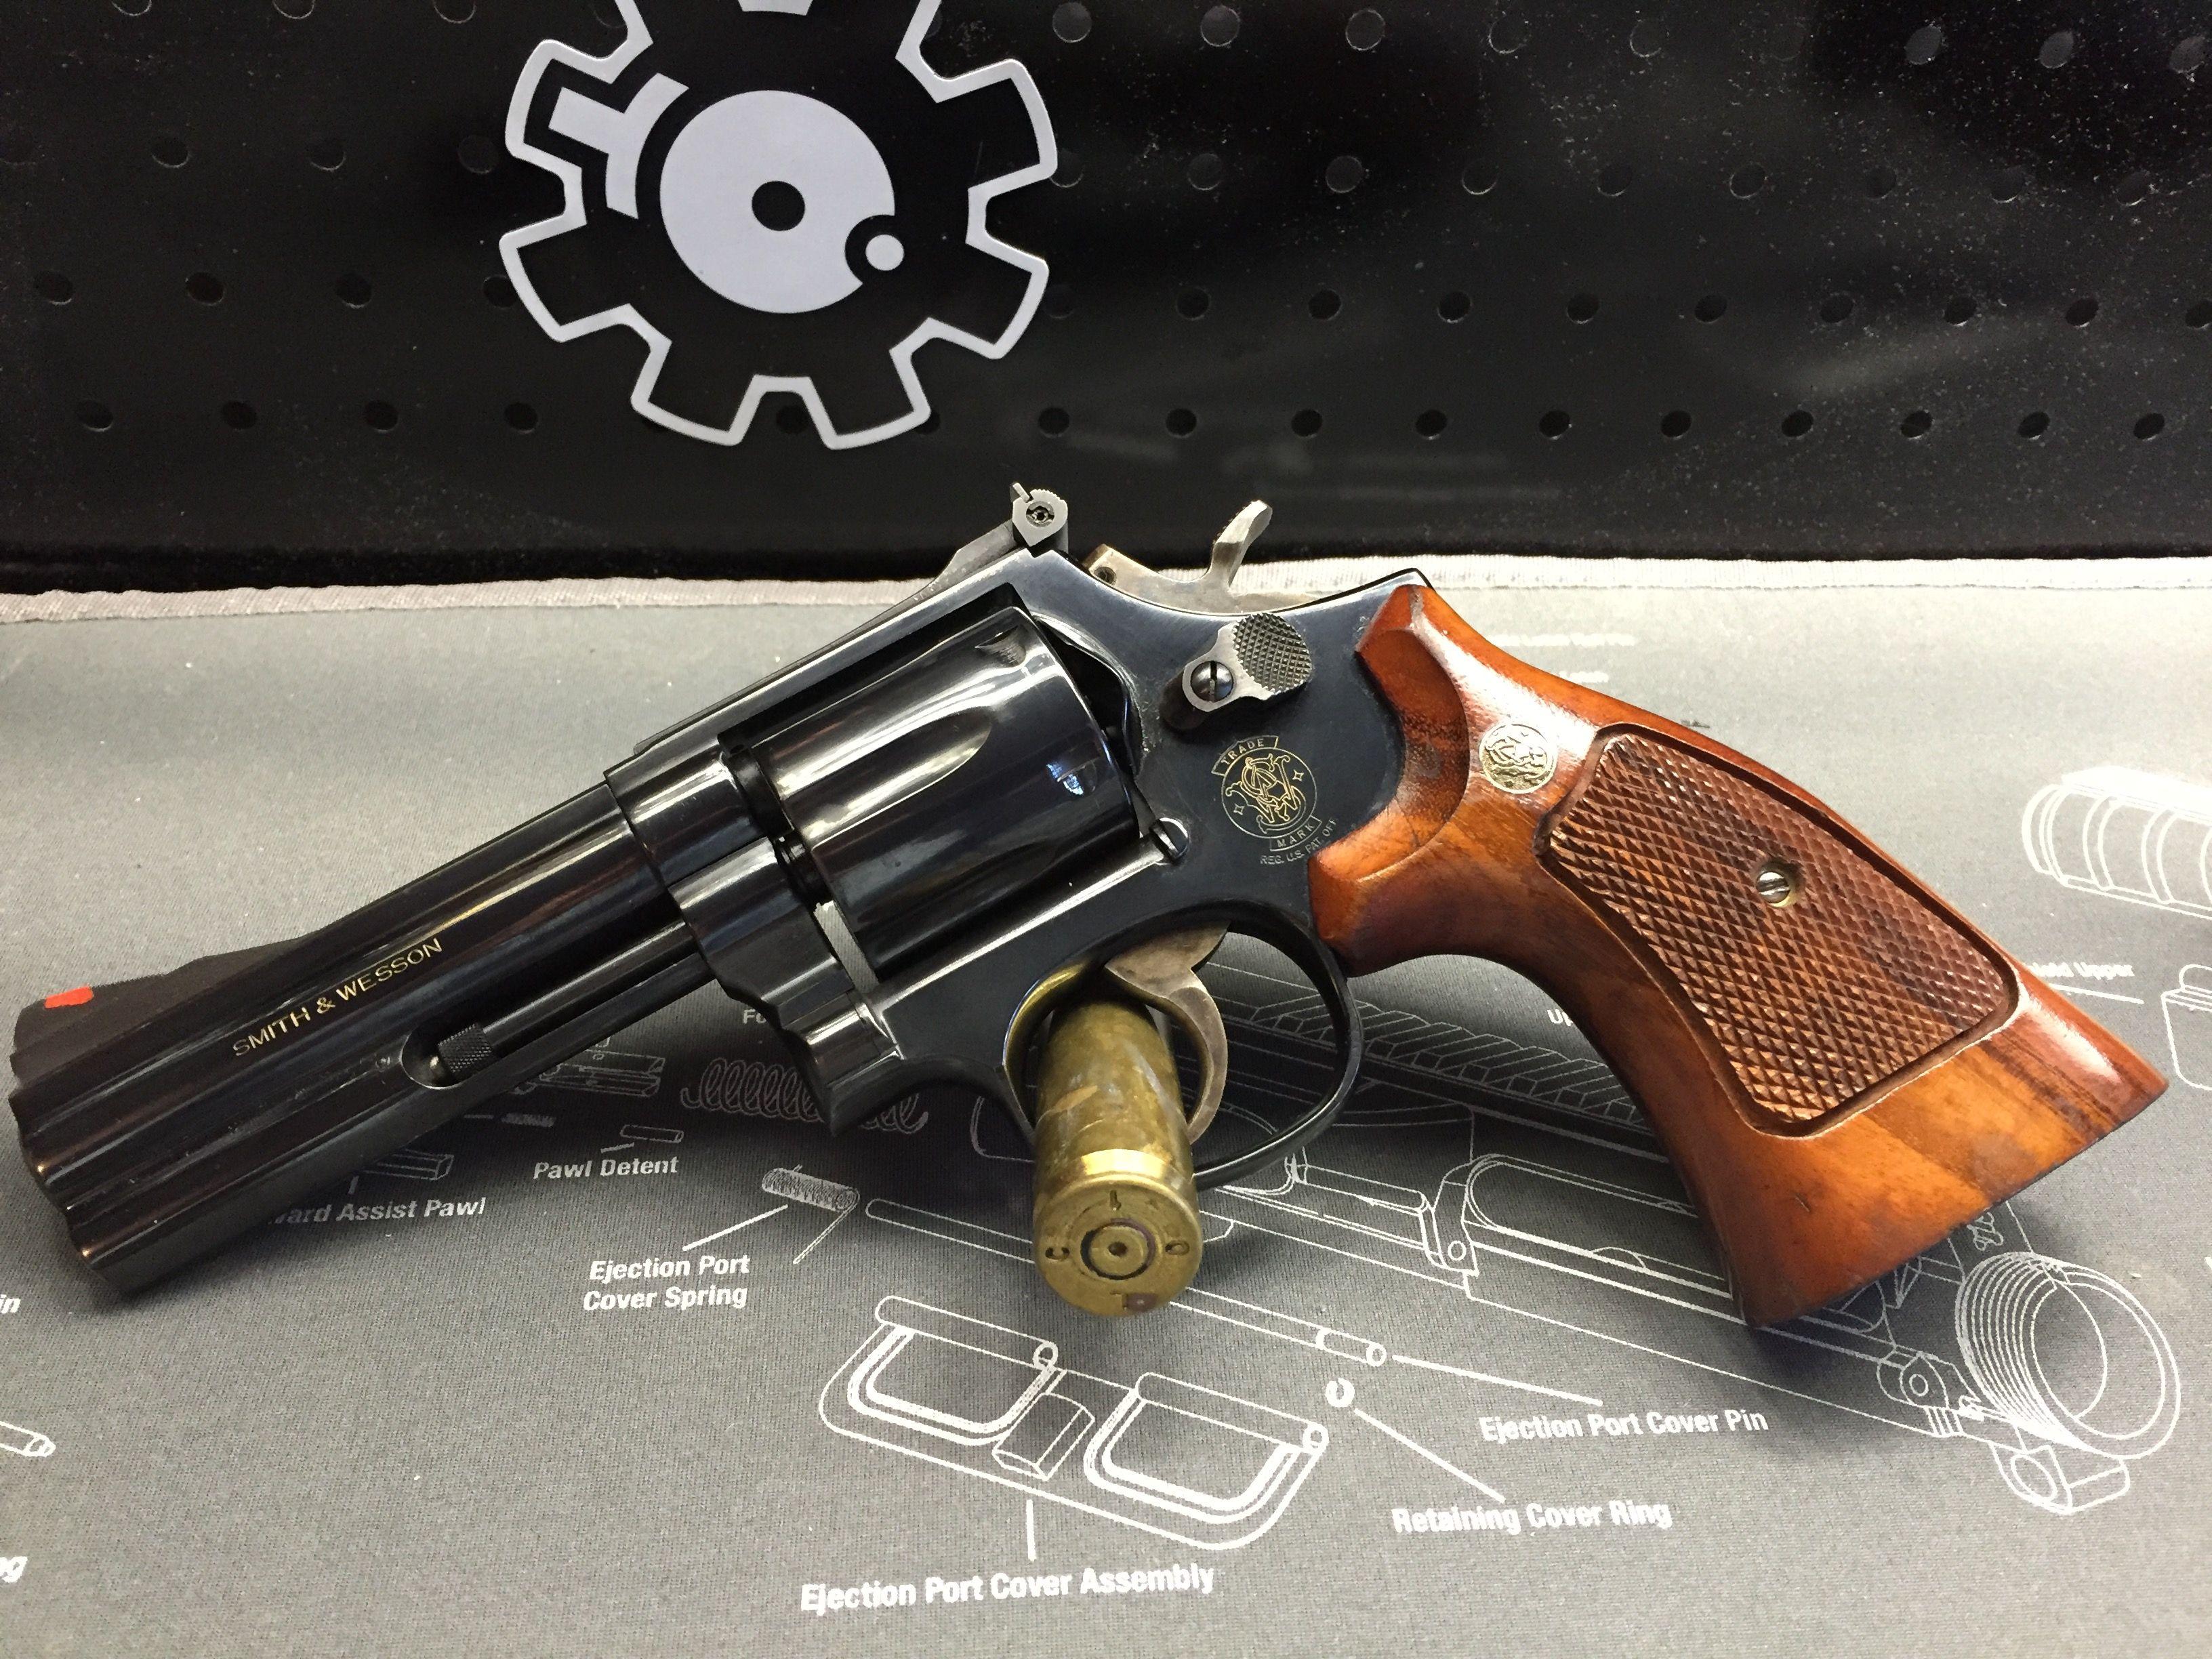 S&W Model 586 with target grips | Revolvers | Pinterest | Revolvers ...